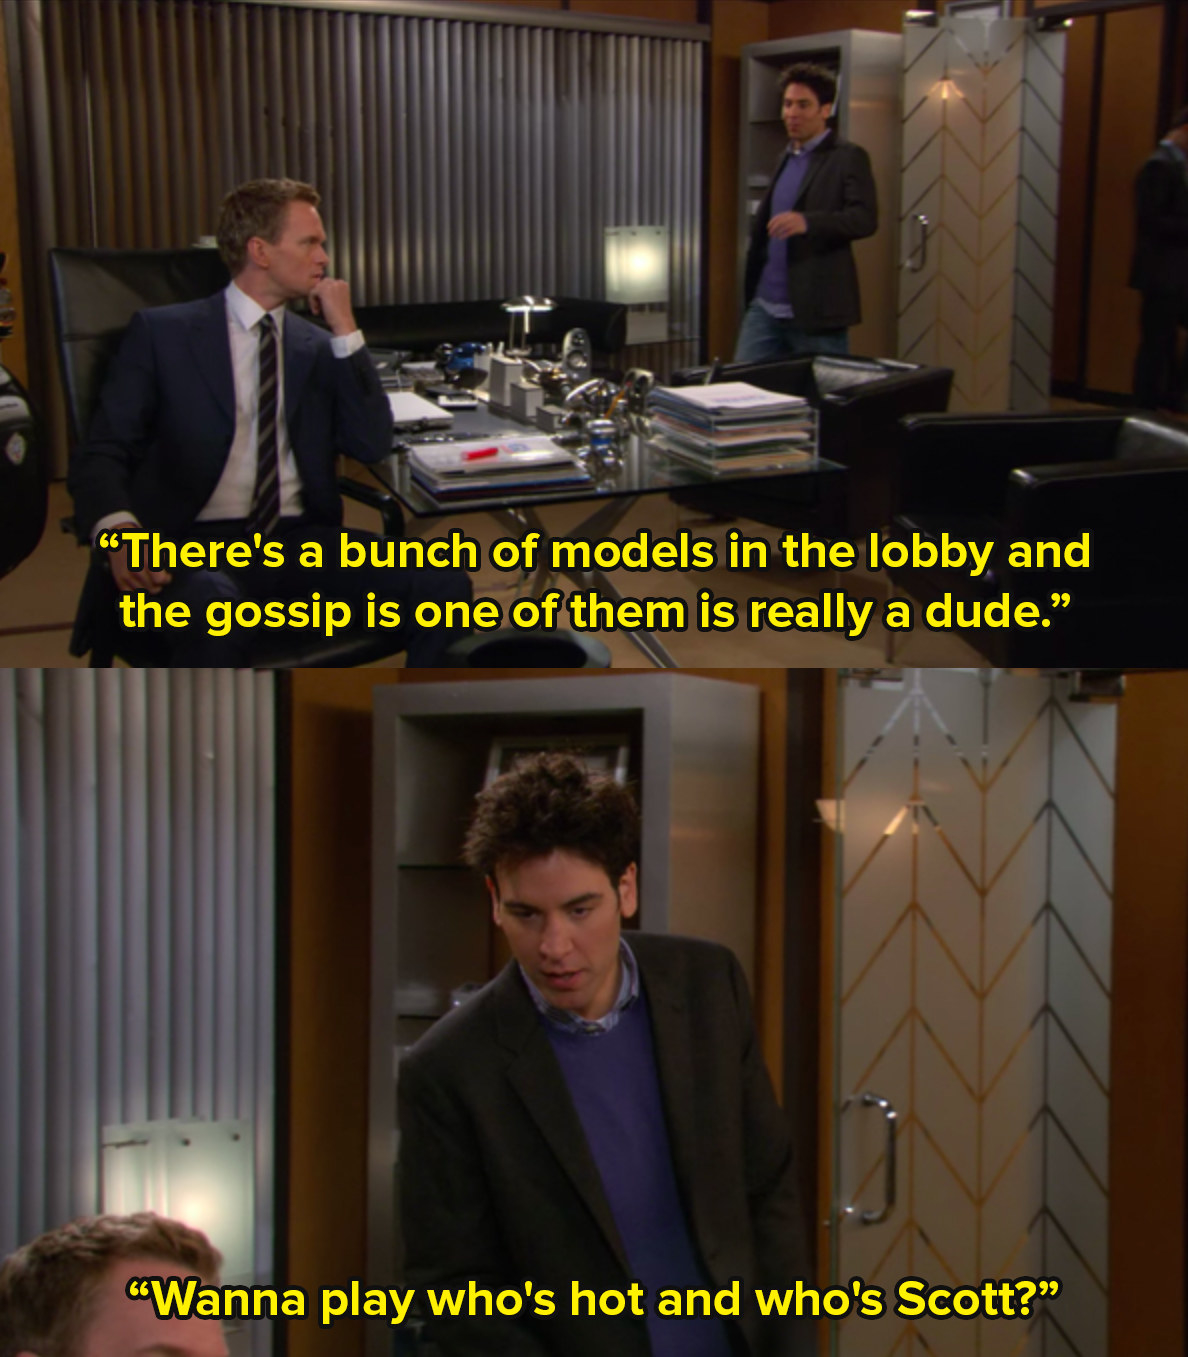 Ted from How I Met Your Mother enters Barney's office and says there's a bunch of models in the lobby, the gossip is one of them is really a dude. Want to play who's hot and who's Scott